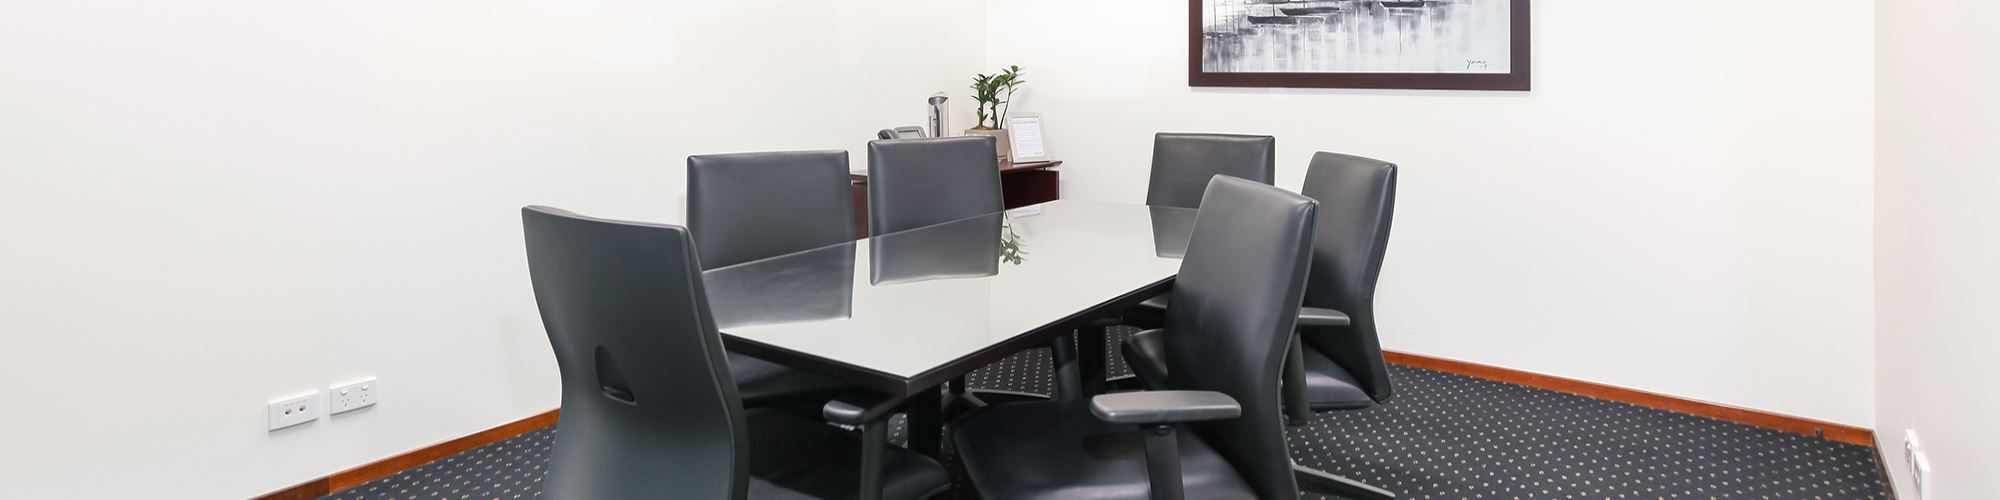 banner-standard-meeting-room-4.jpg